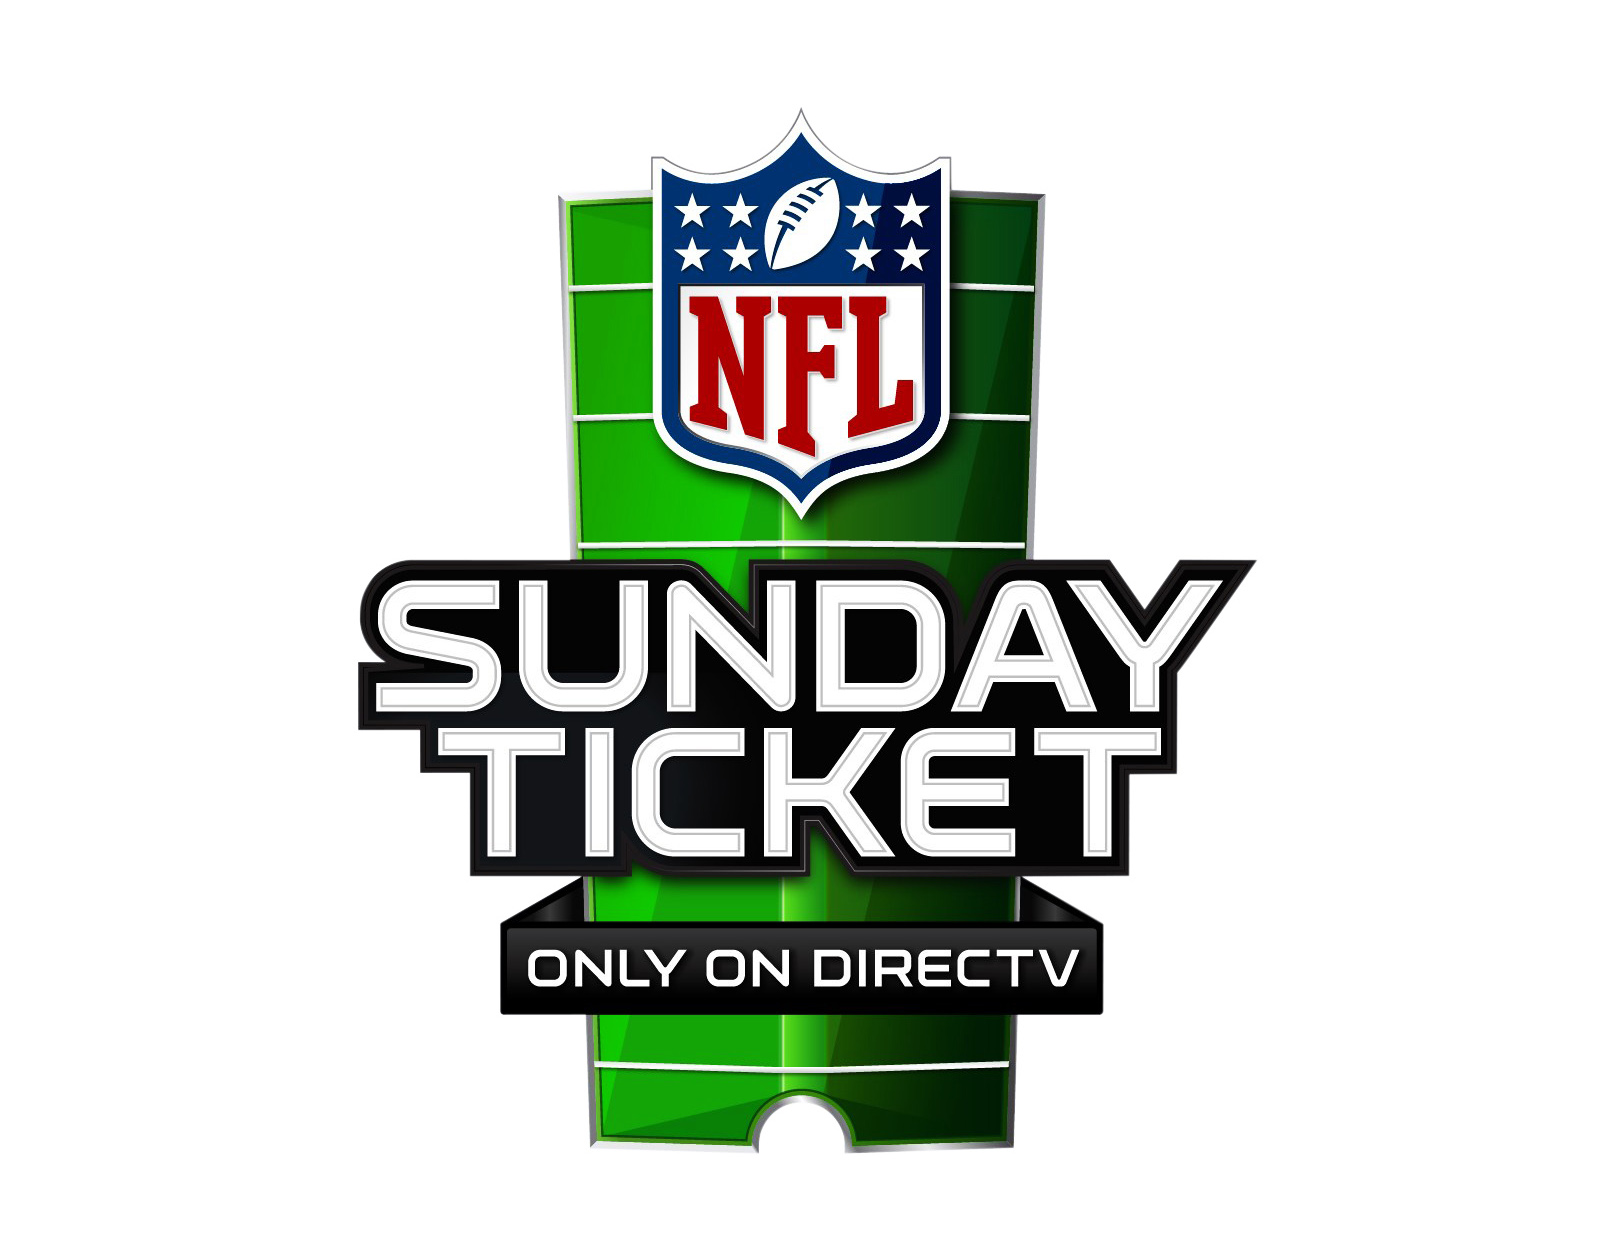 Best christmas gifts for dad in 2017 directtv nfl sunday ticket publicscrutiny Images